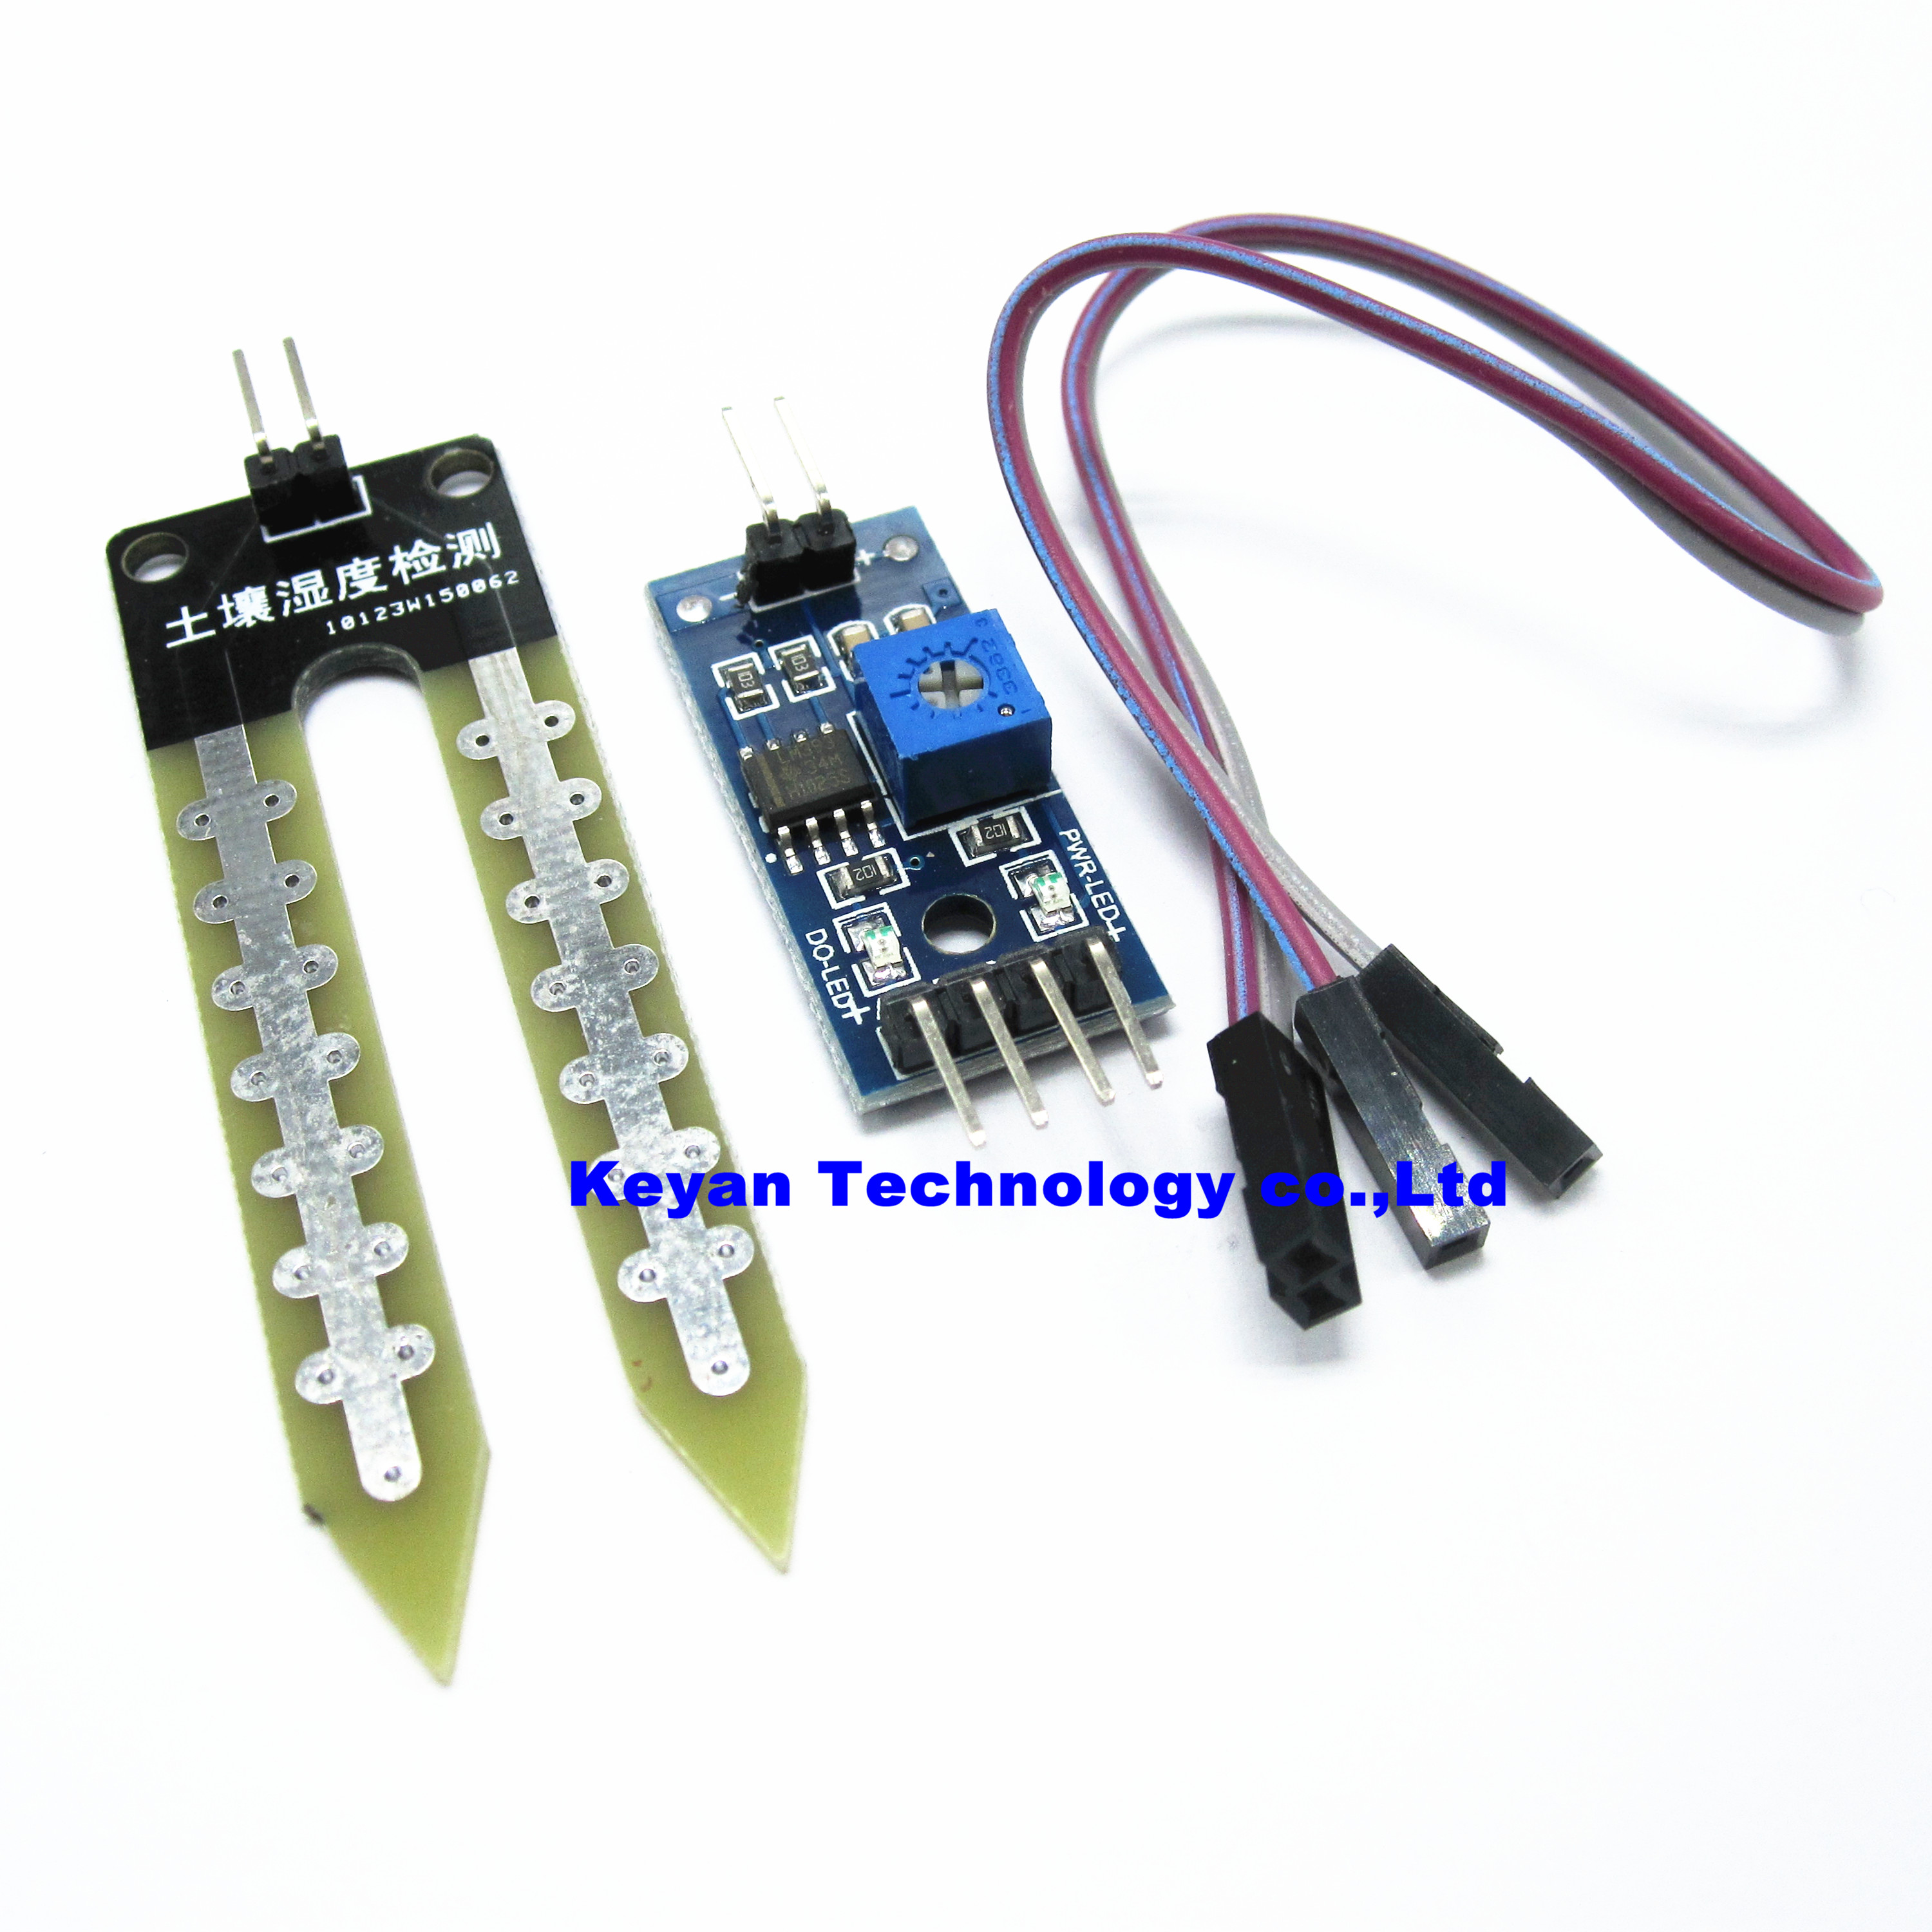 20pcs Lot Soil Moisture Meter Testing Module Humidity Sensor Electronic Components Integrated Circuitsicsicchina Mainland Robot Intelligent Car In Circuits From Supplies On